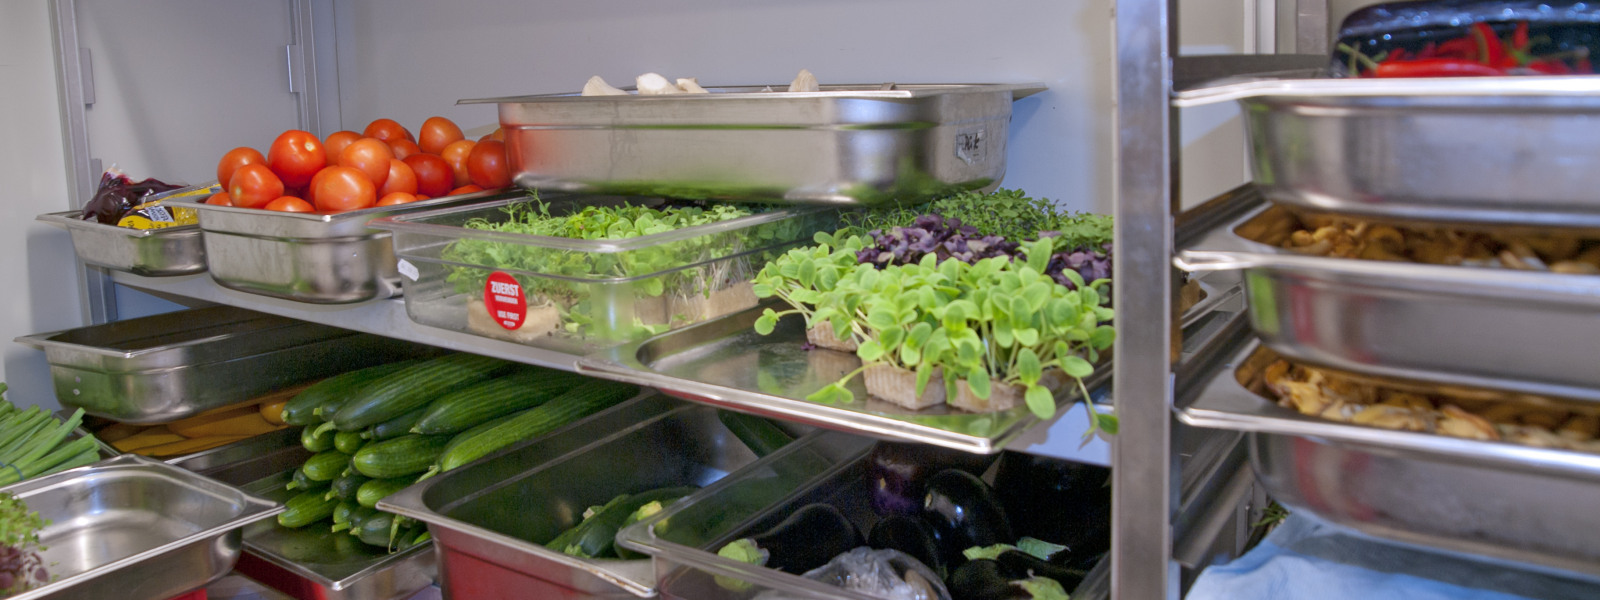 Do Your Restaurant Coolers Maintain the Right Temperatures?